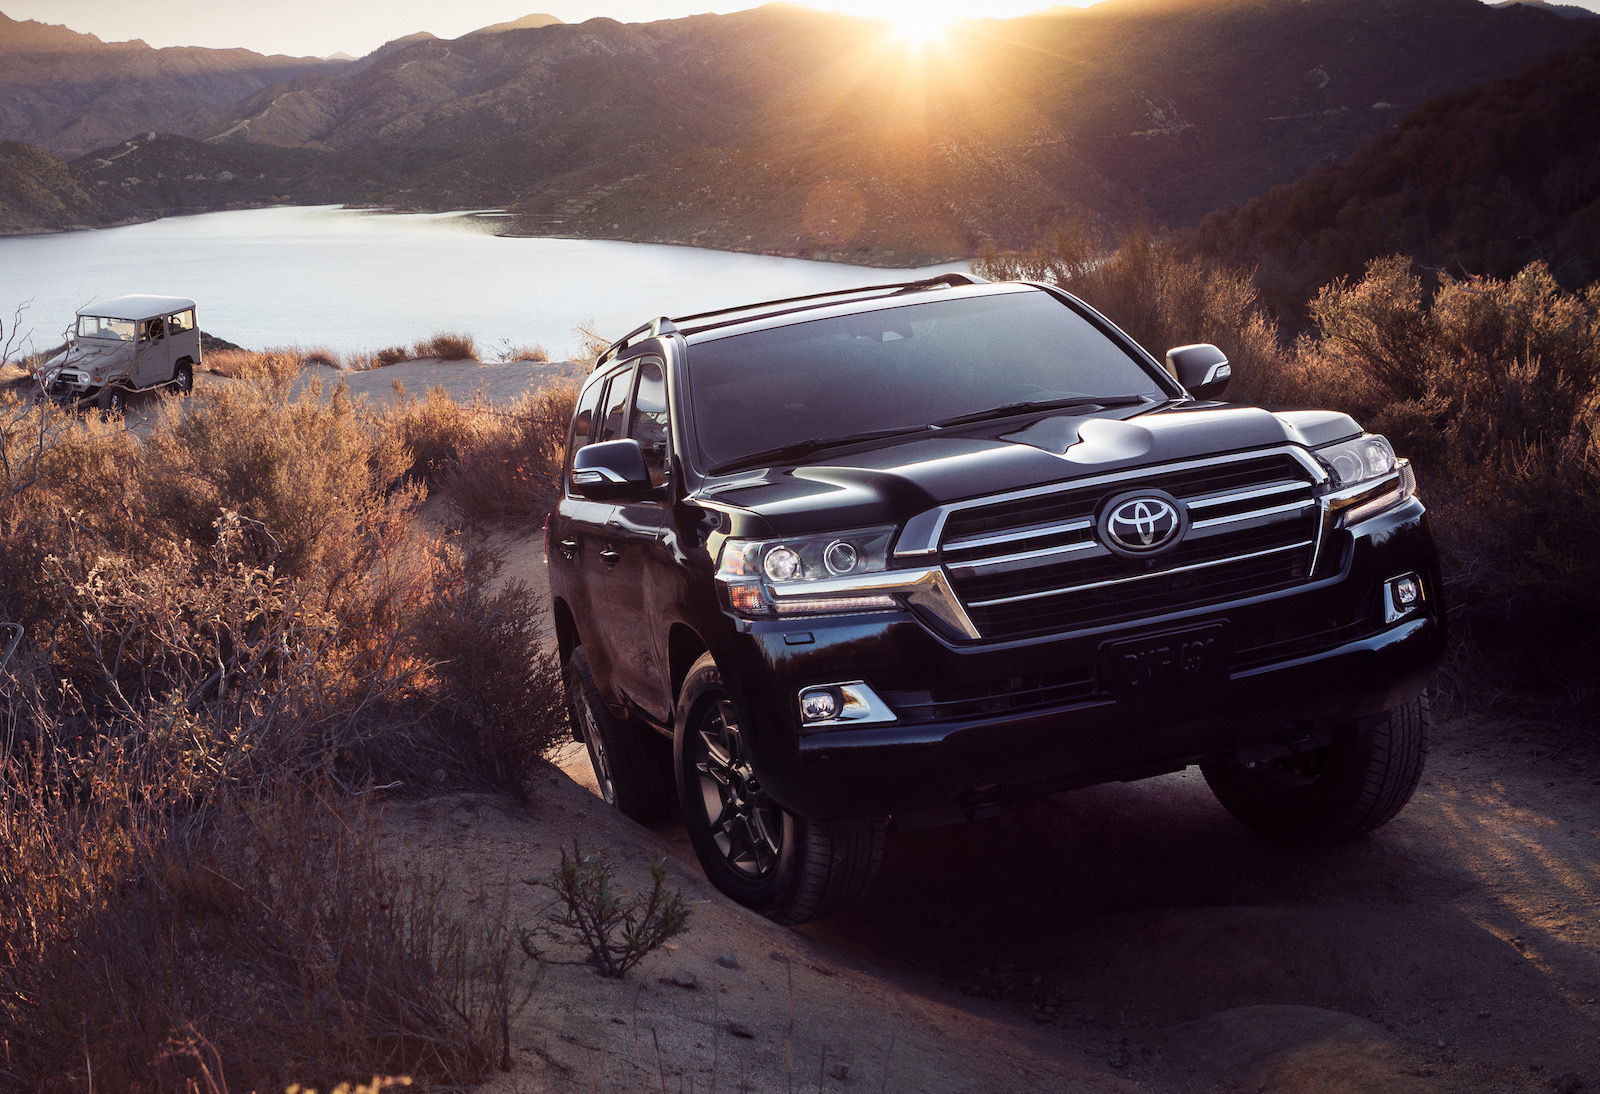 2020 Toyota LandCruiser 300 Series to get 3 5 twin-turbo V6